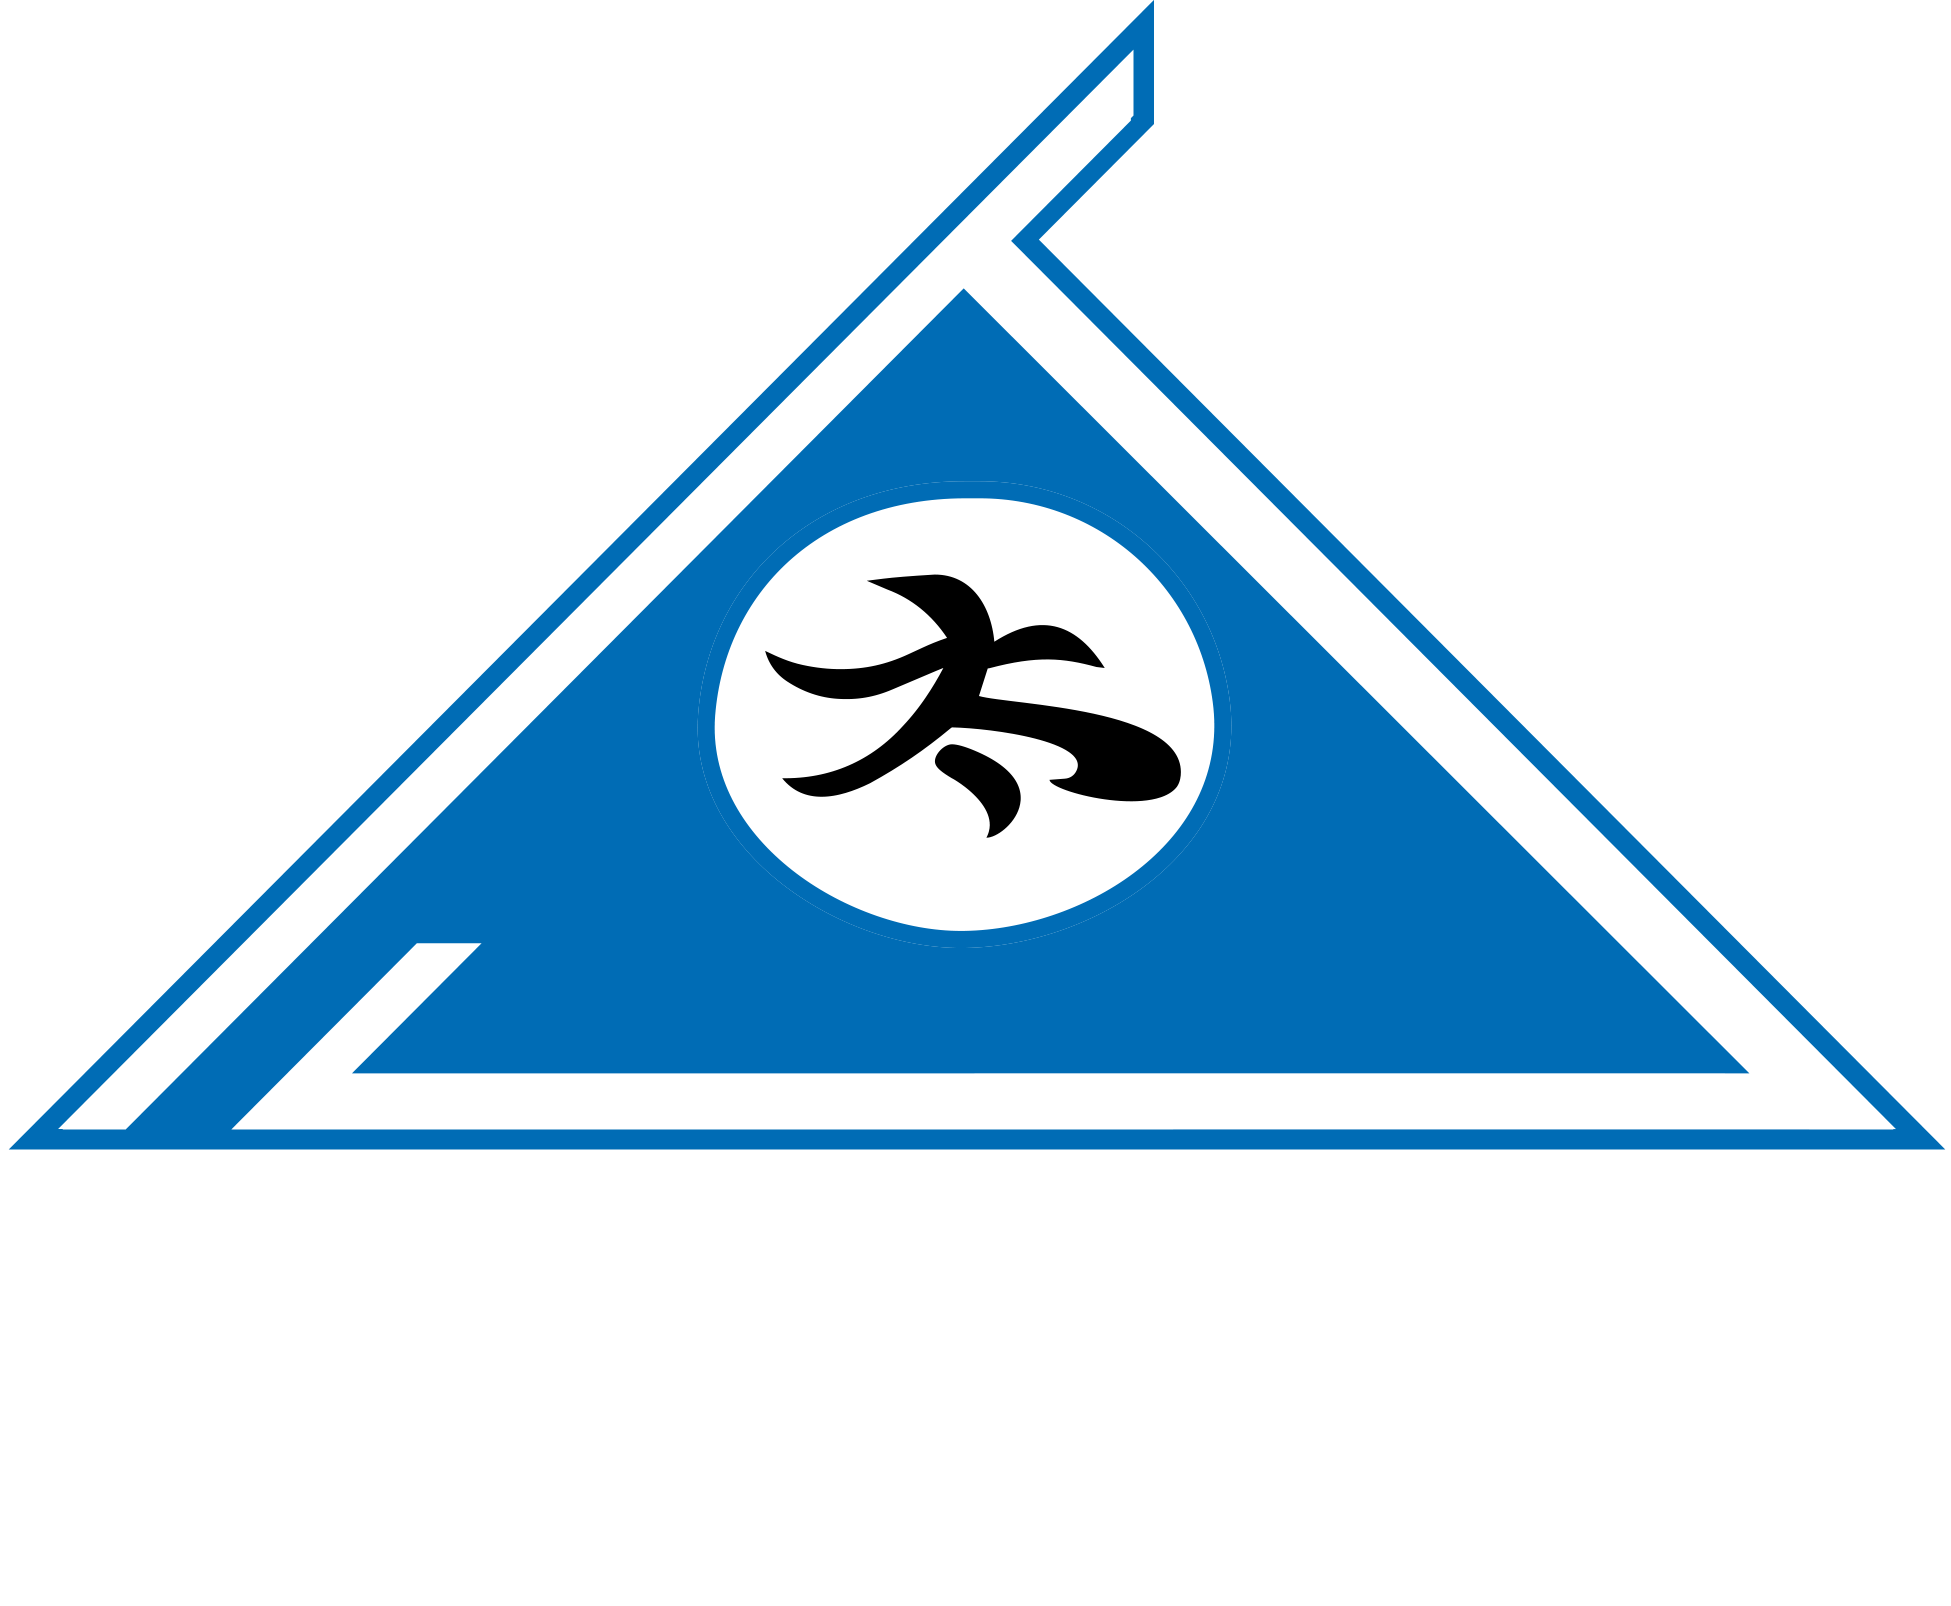 World Championship Martial Arts